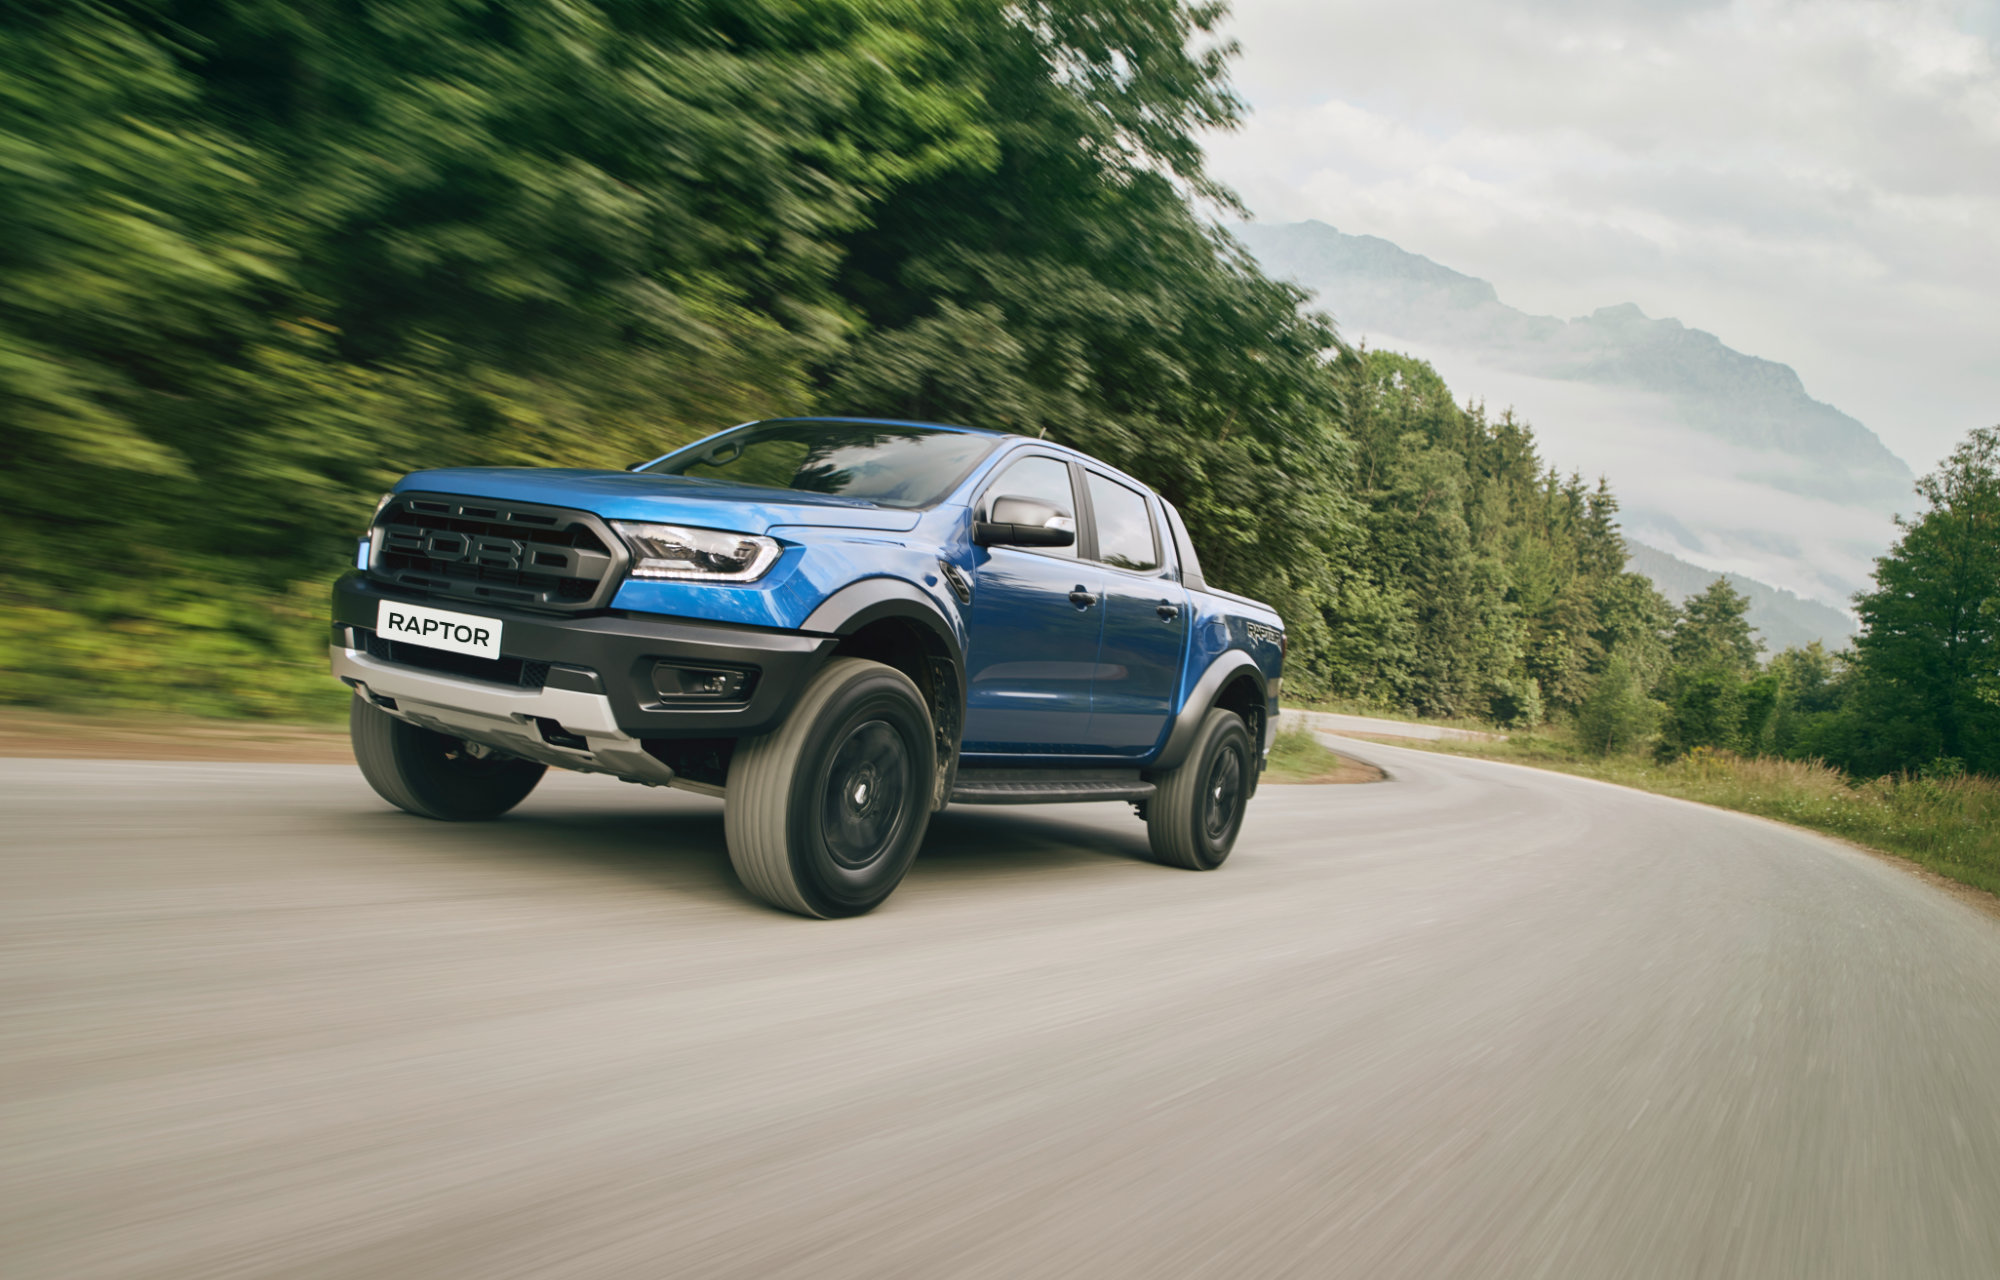 Ford Ranger Raptor- Designed to Conquer